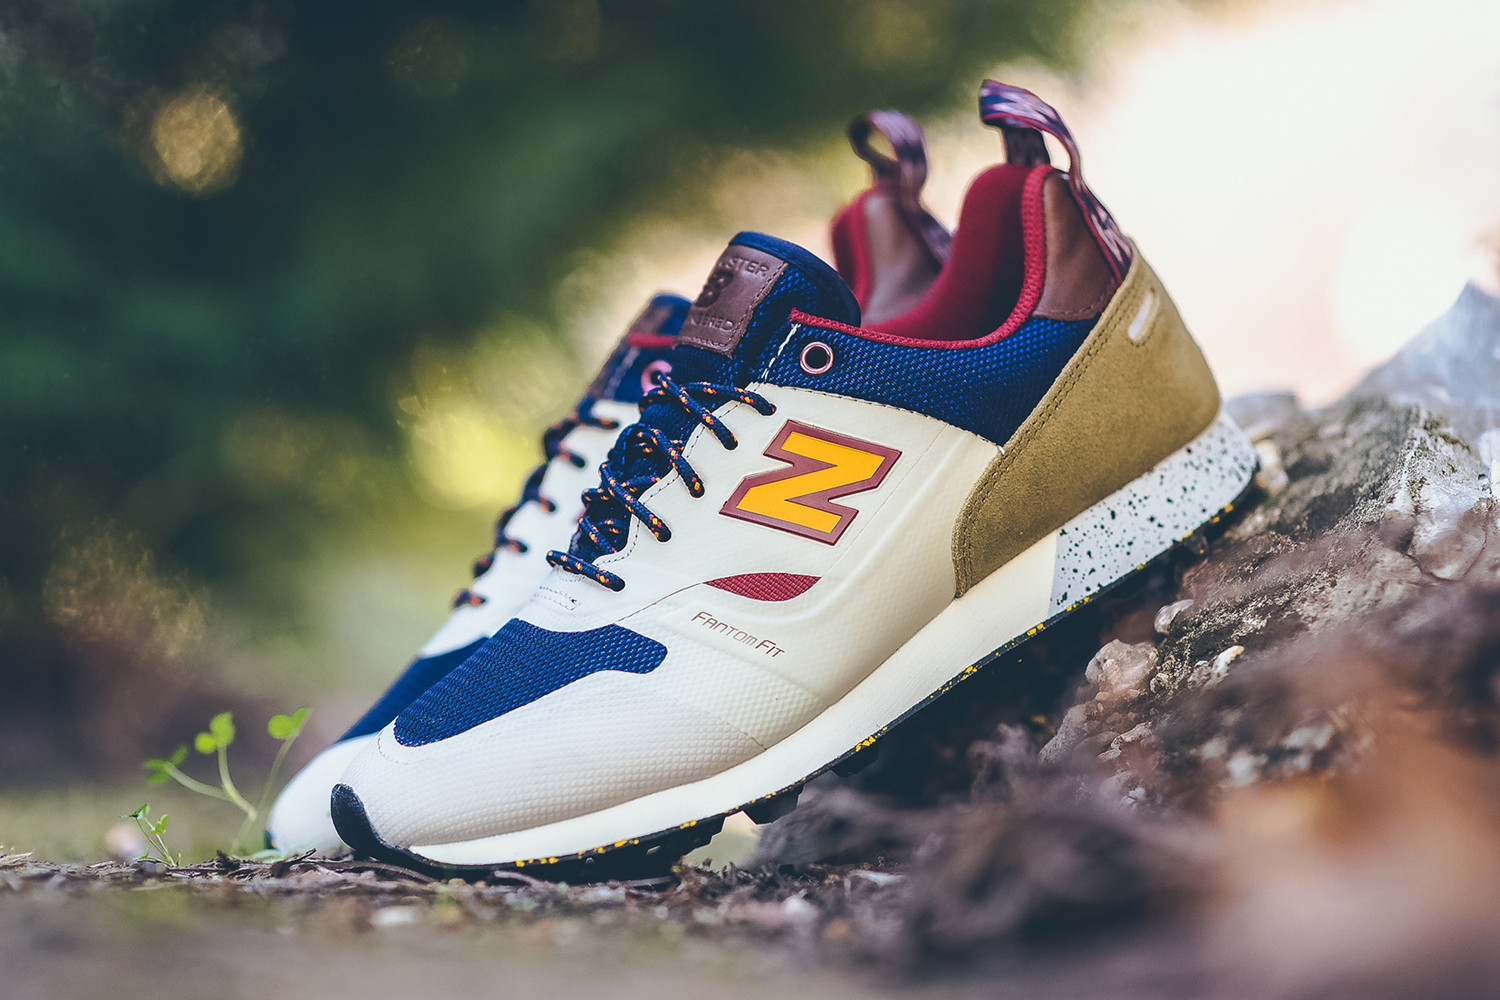 The New Balance Trailbuster is a